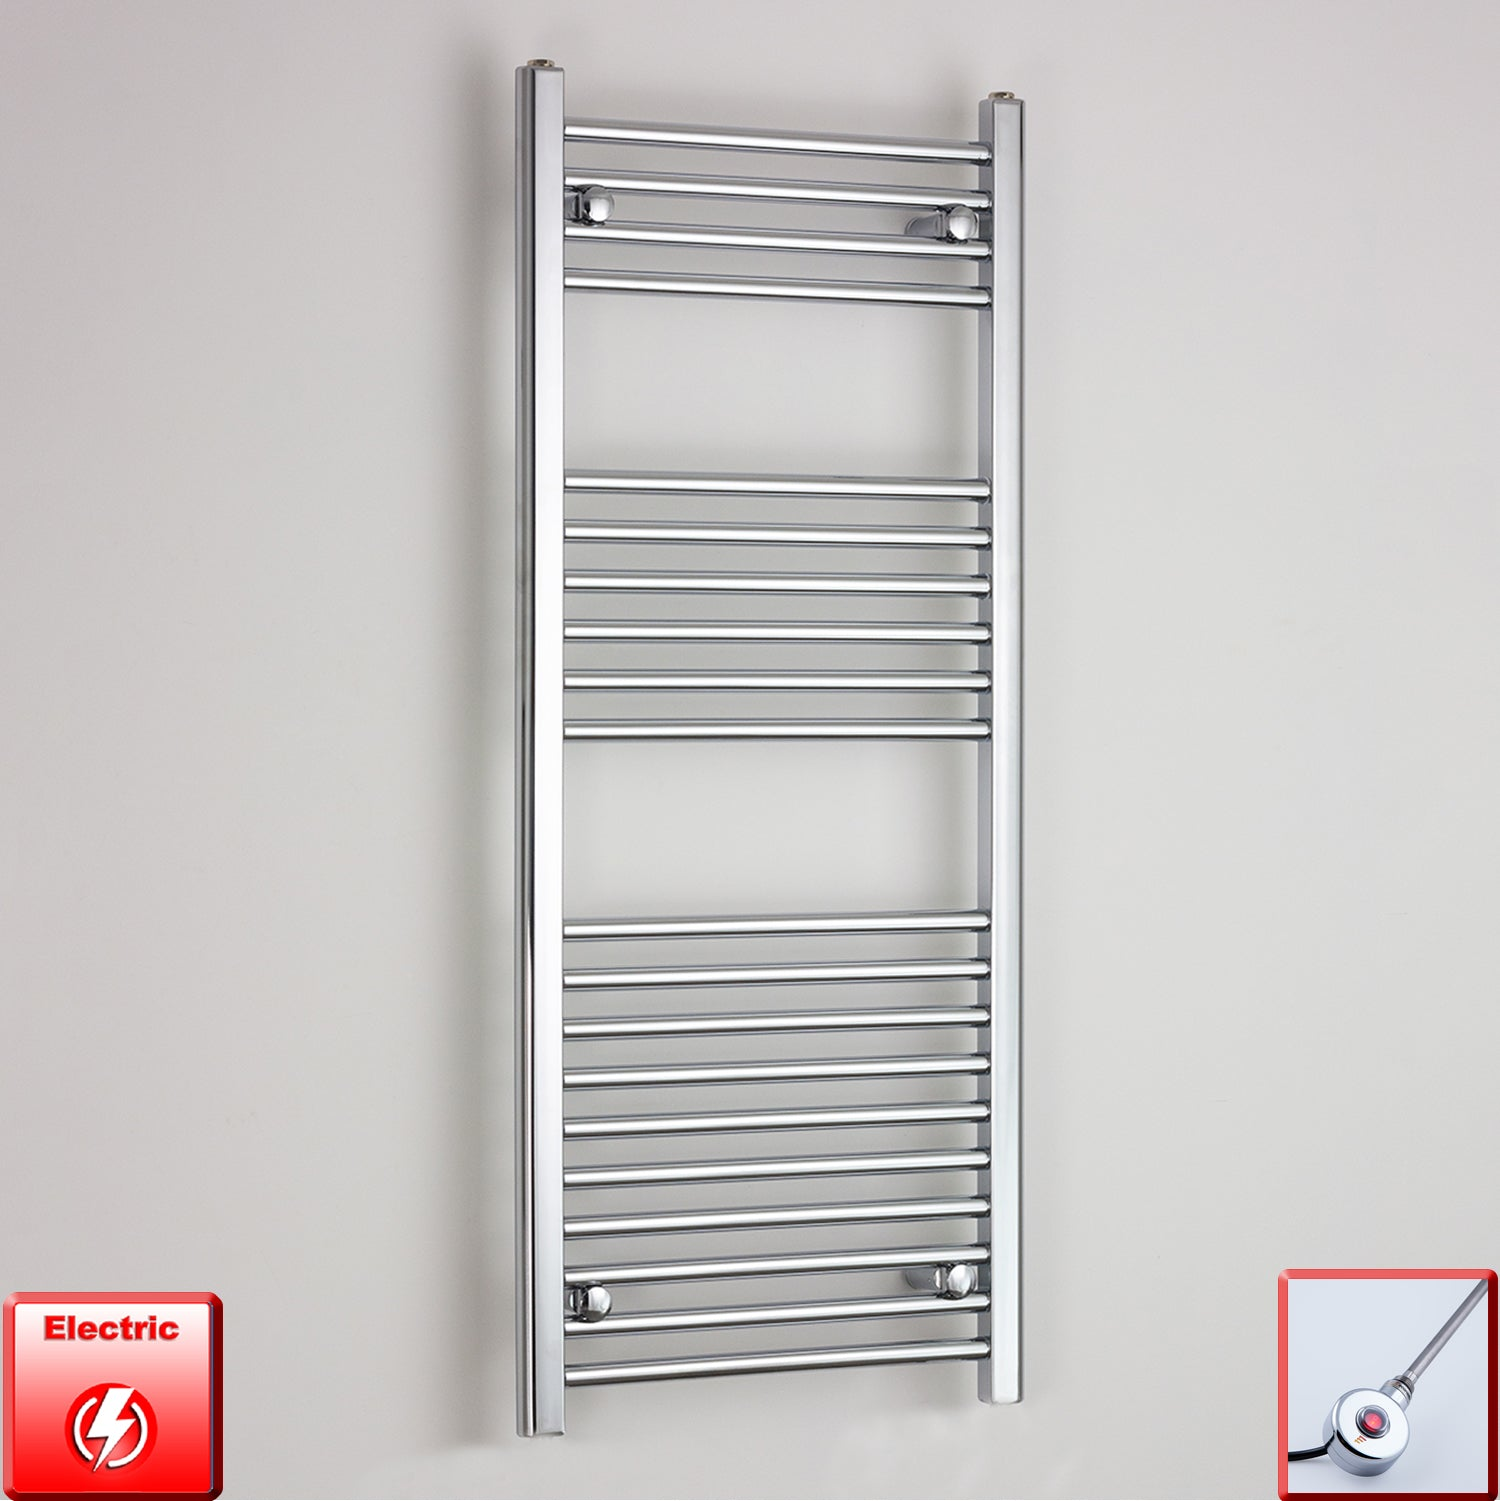 500mm Wide 1200mm High Pre-Filled Chrome Electric Towel Rail Radiator With Ecoradco on off Single Heat Element